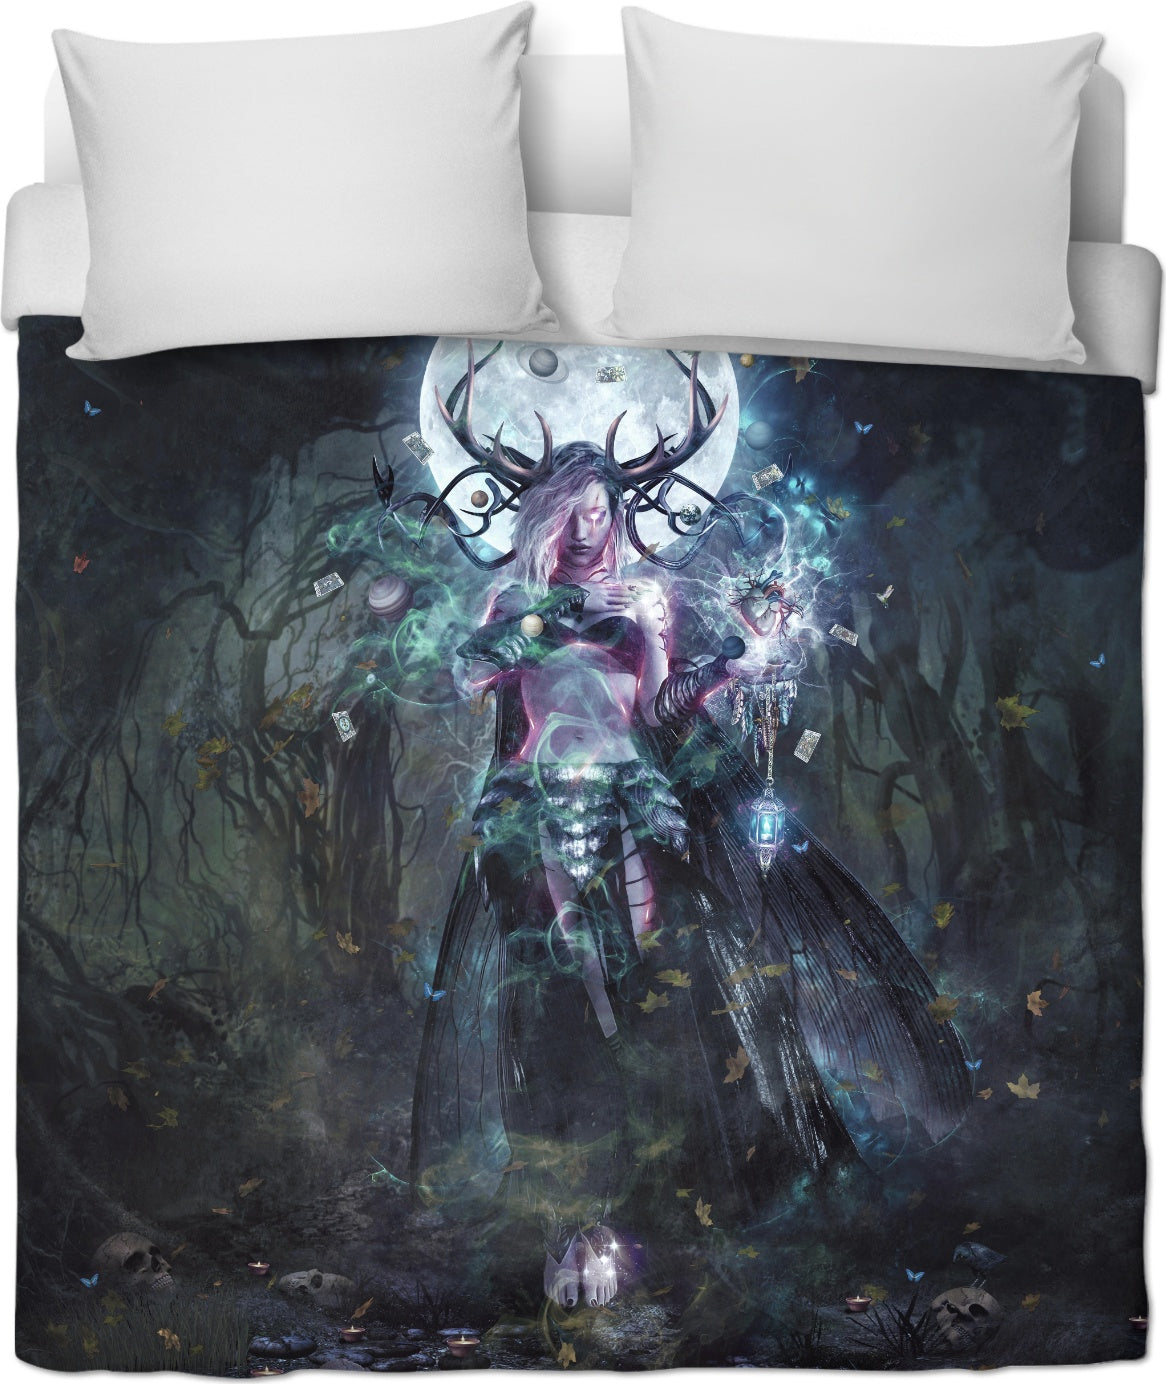 The Dreamcatcher - Duvet Cover